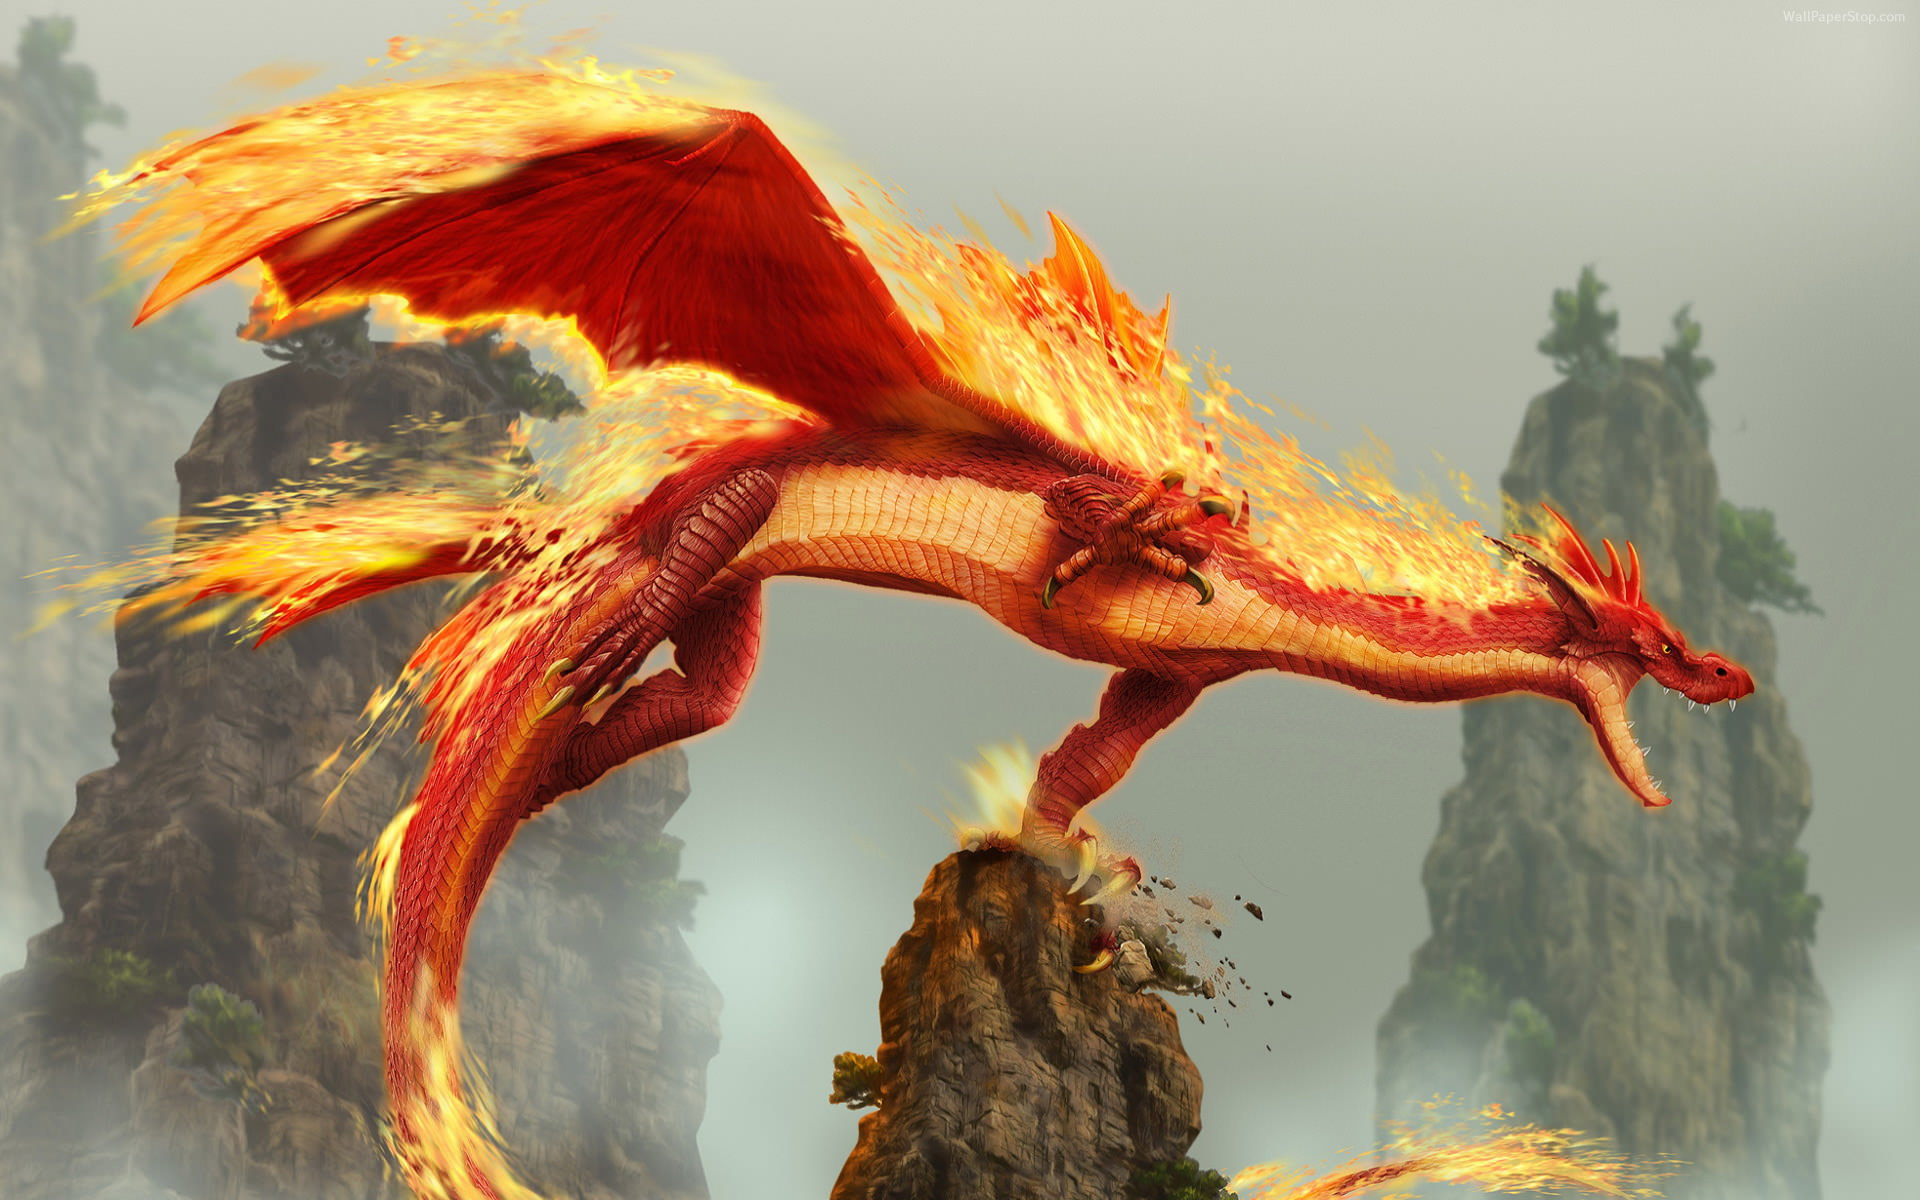 Red Fire Dragon: Red Fire Dragon Wallpaper